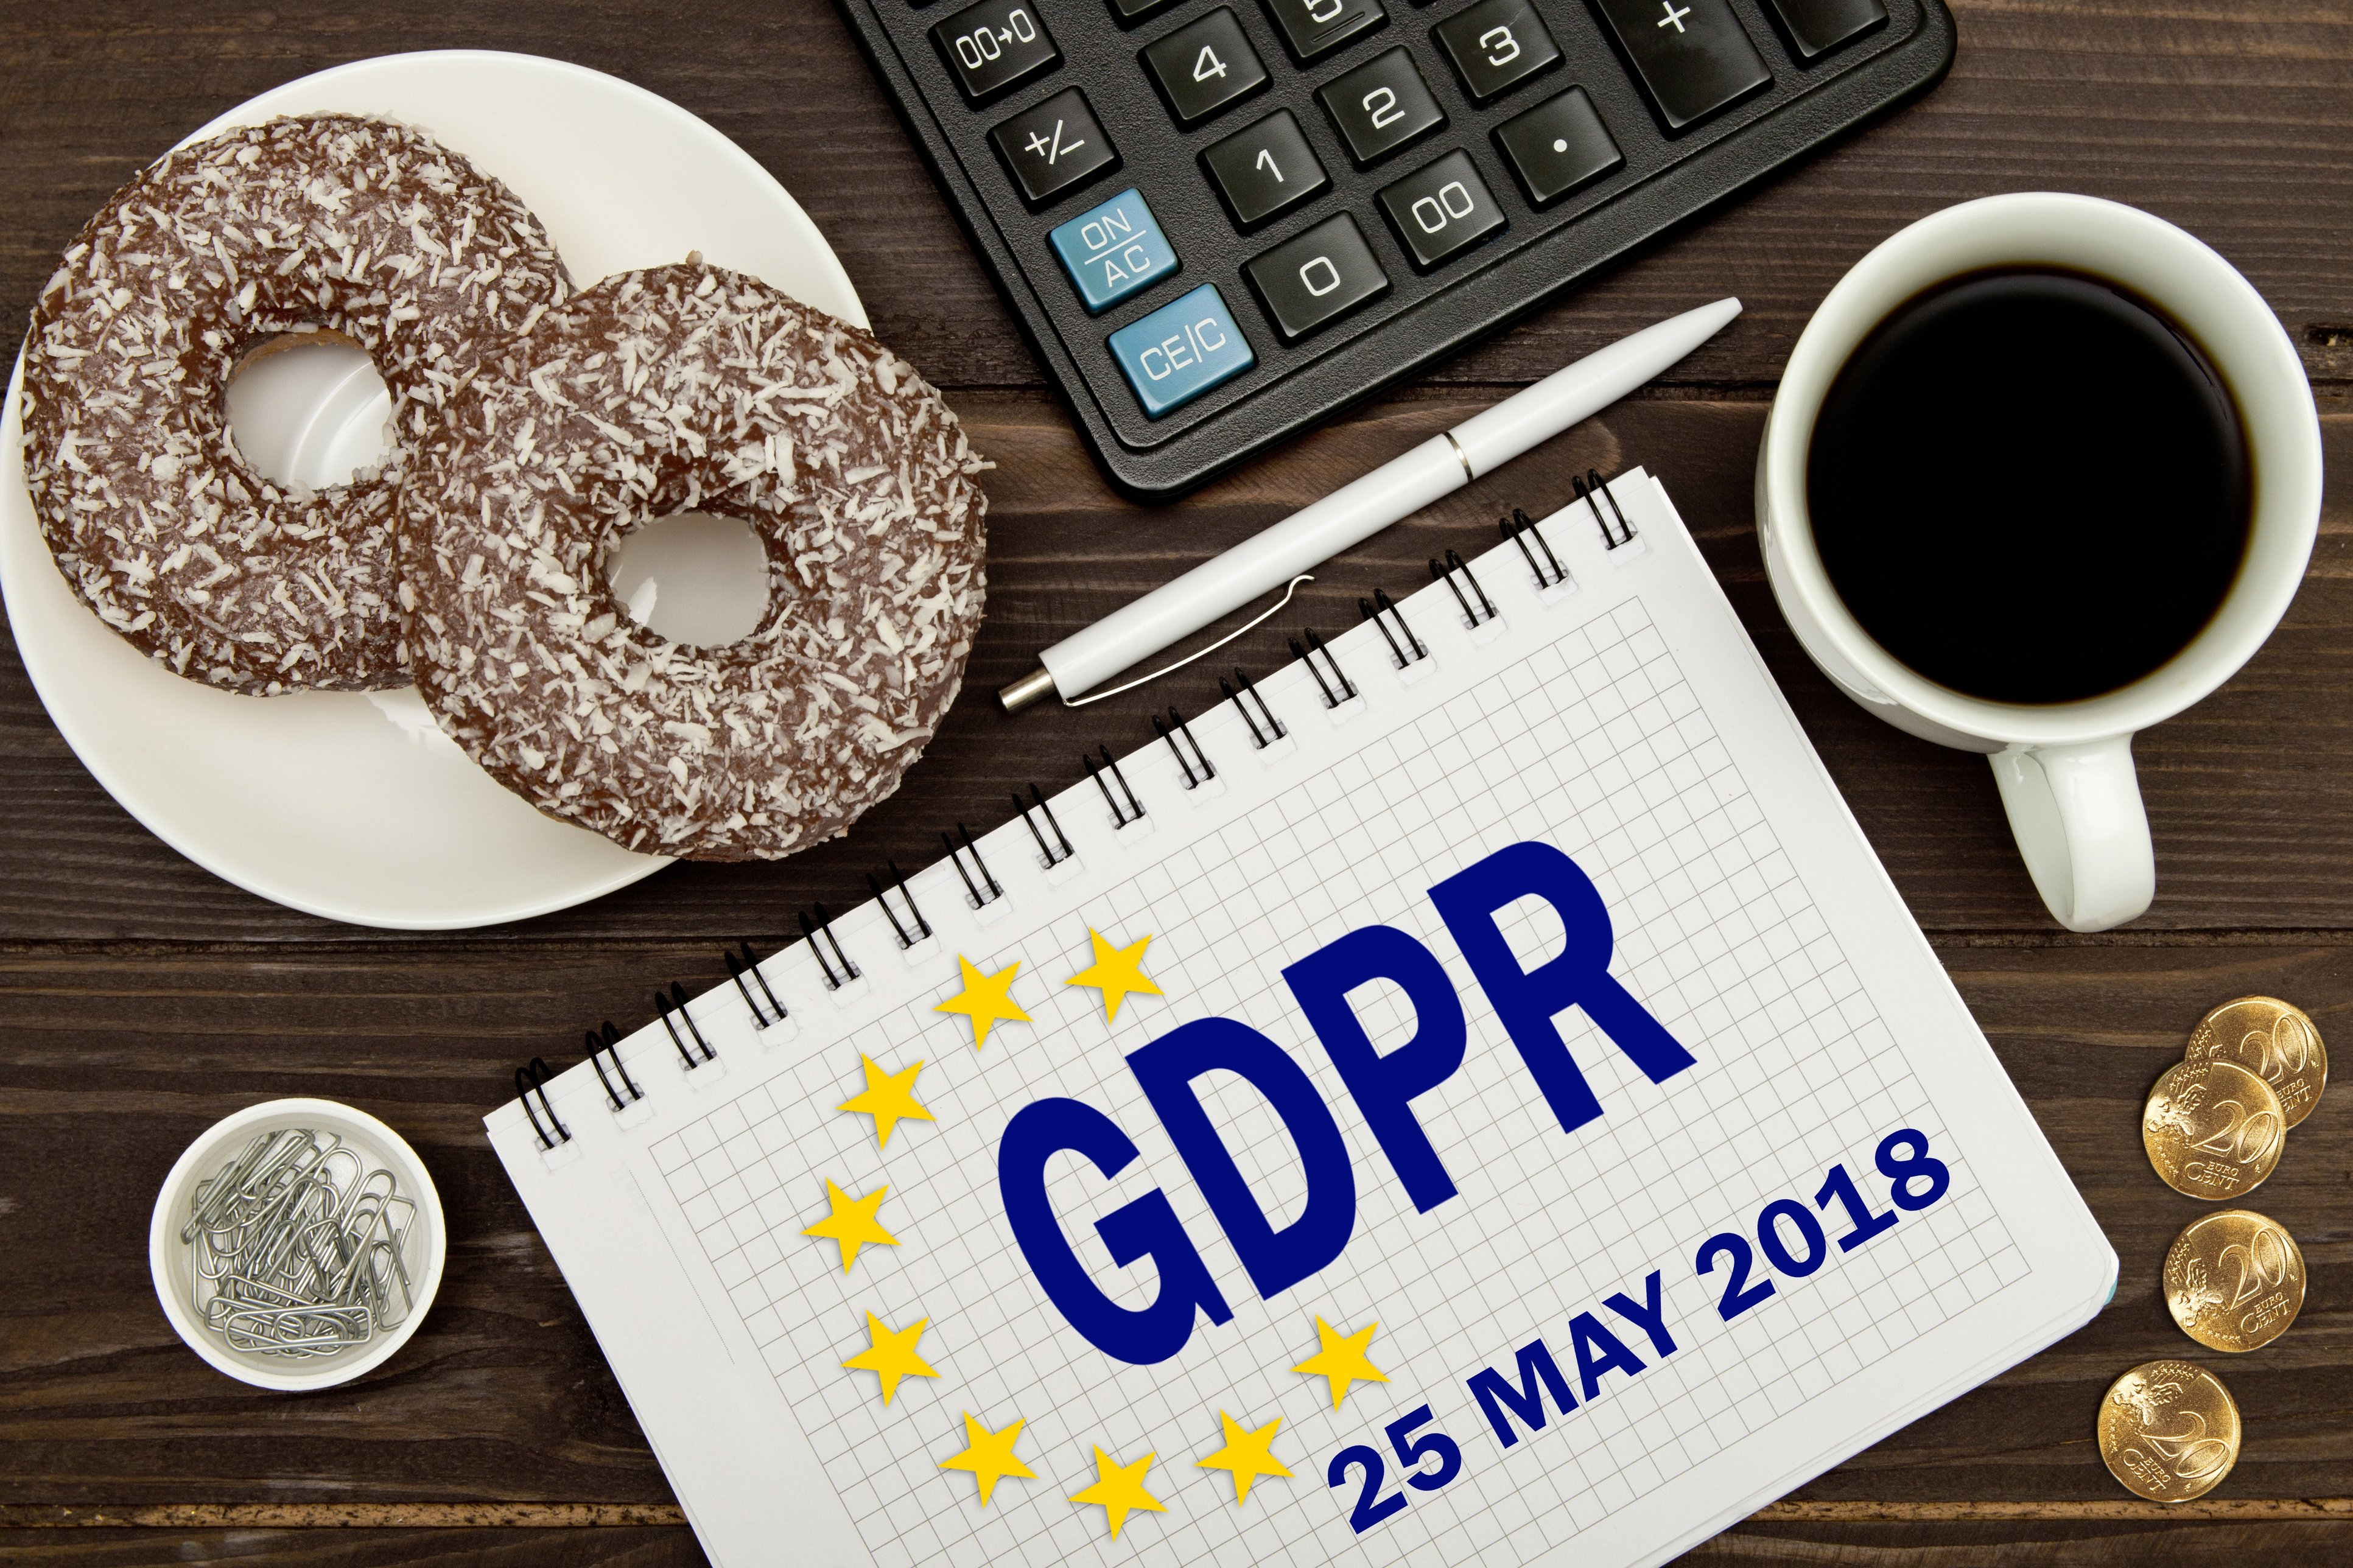 GDPR.-Notebook-with-Notes-General-Data-Protection-Regulation-on-the-table-of-a-businessman-.-898176928_3869x2579